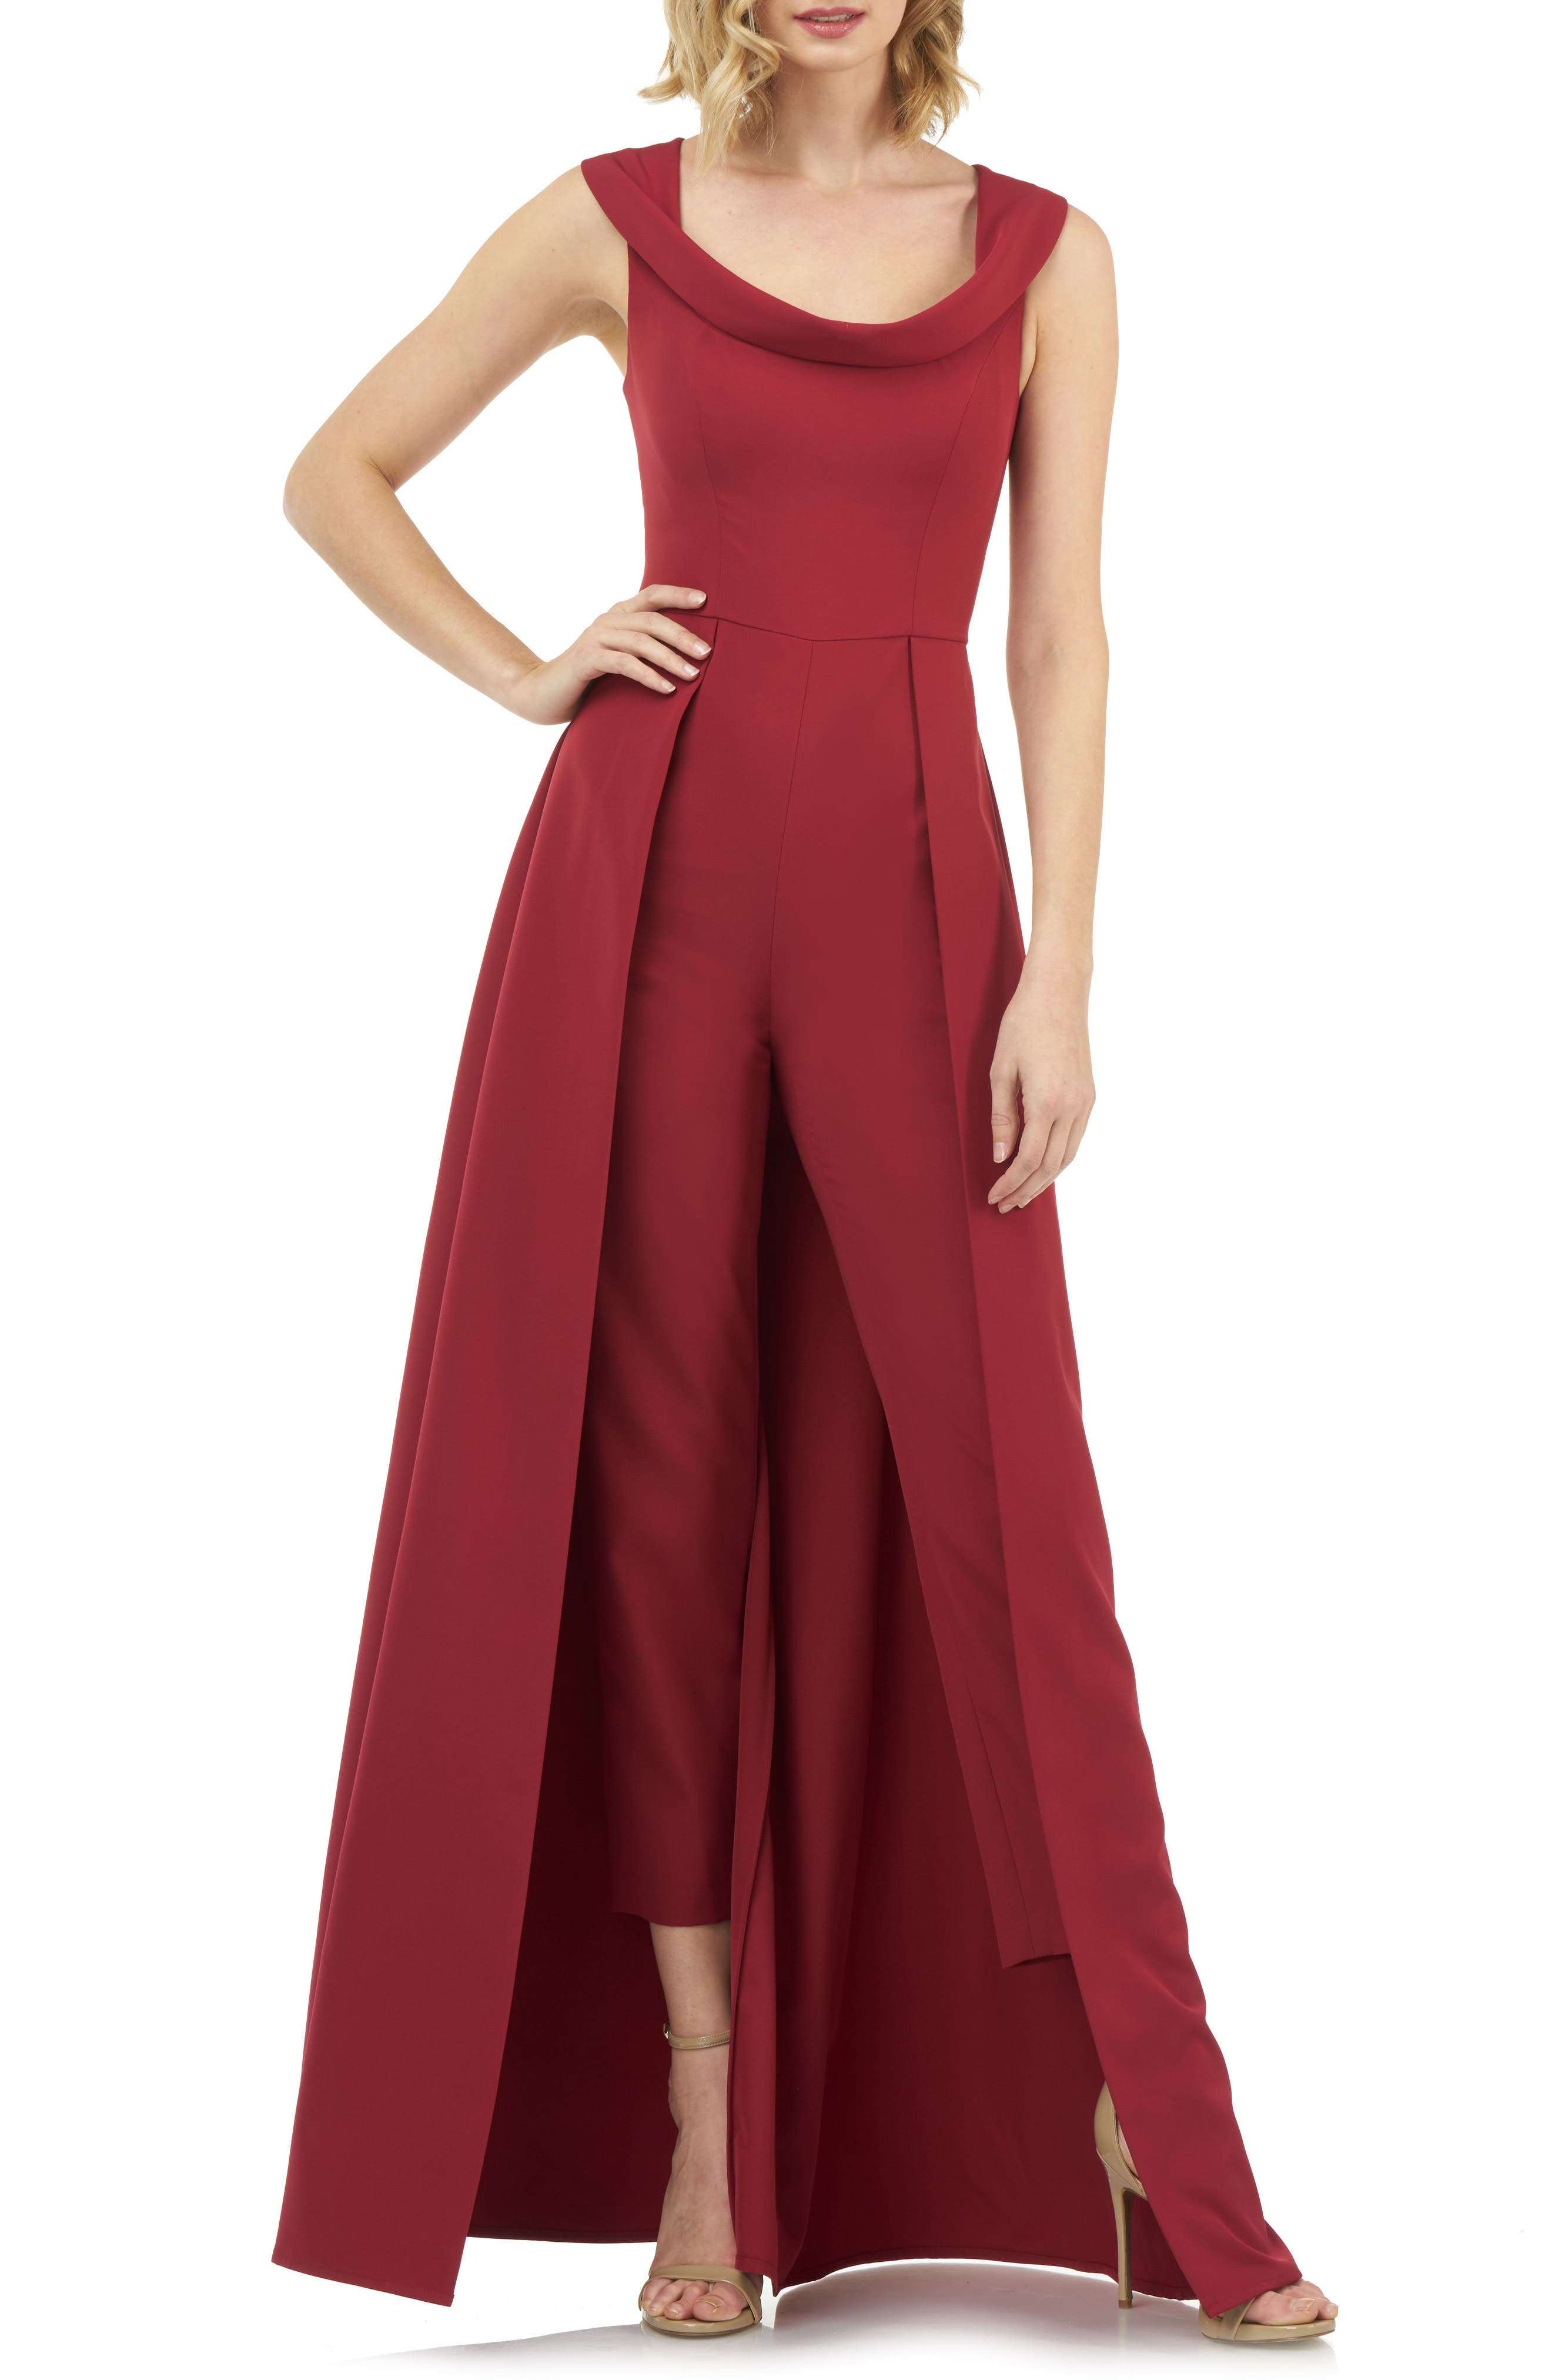 Vintage Evening Dresses Womens Kay Unger Jumpsuit Gown Size 12 - Red $268.00 AT vintagedancer.com